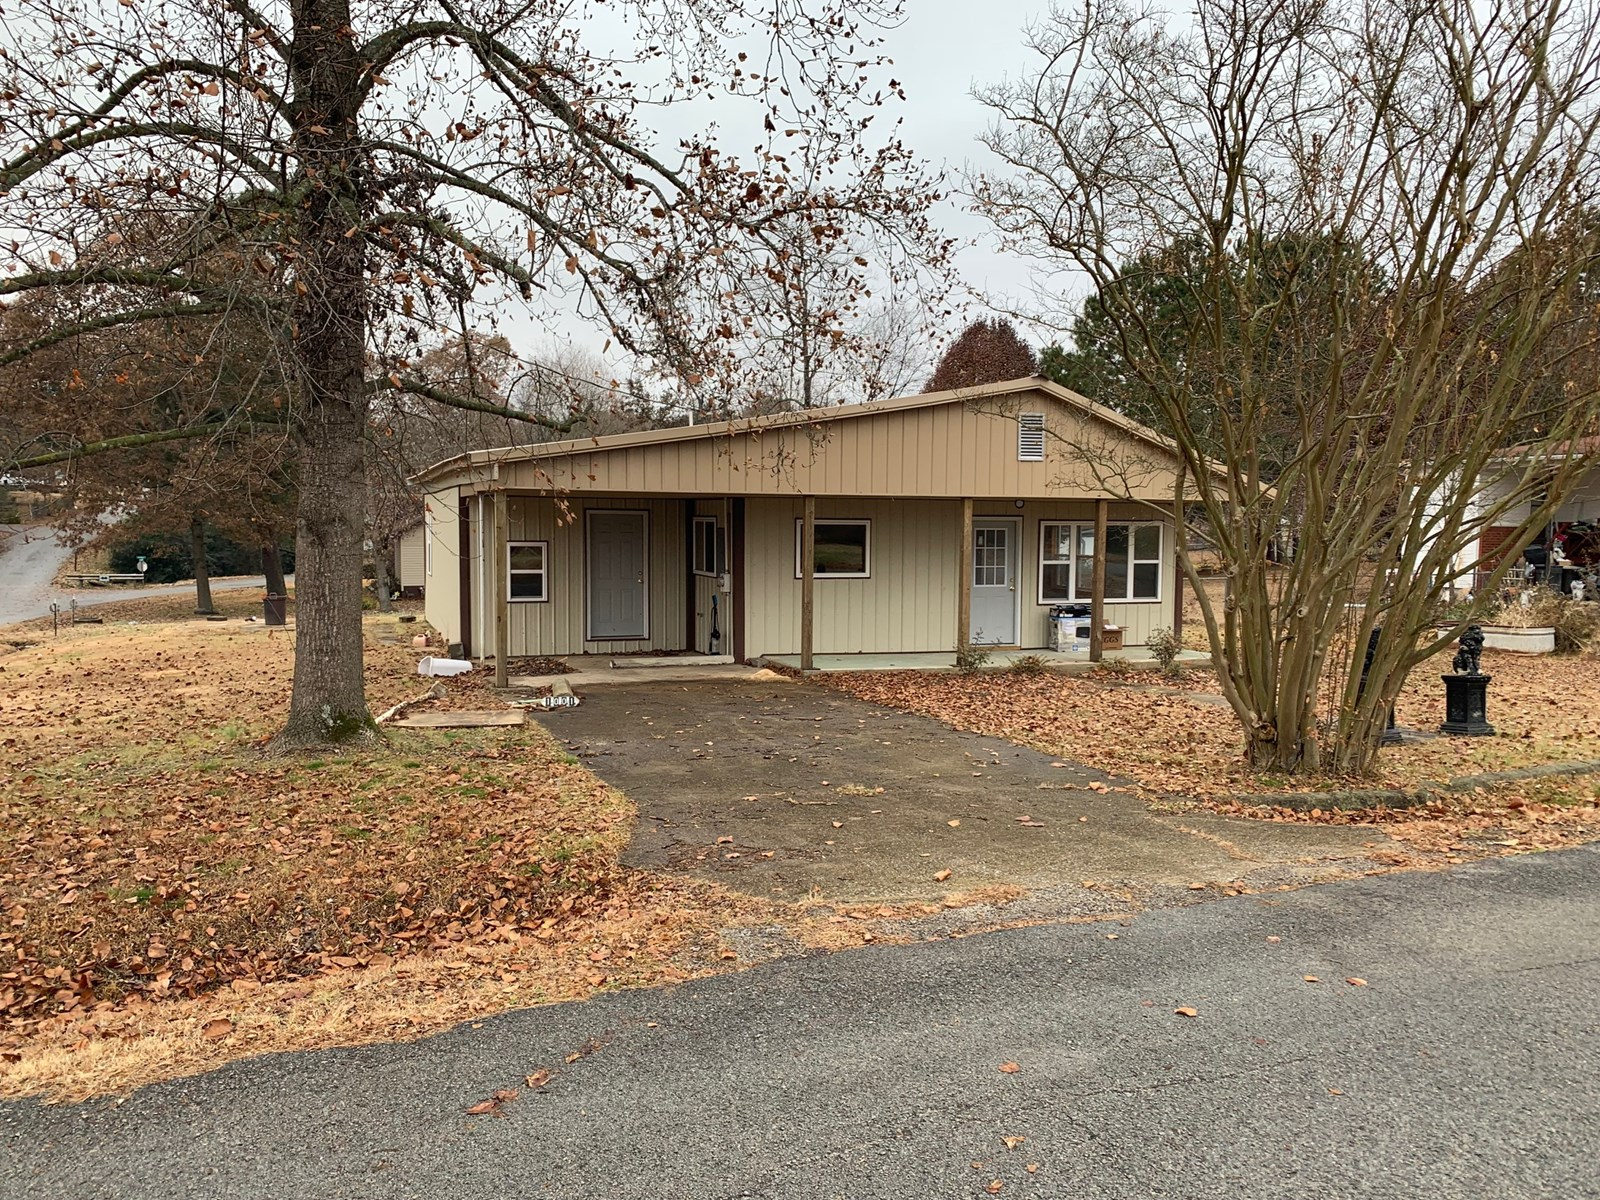 Home in town for sale, Newly remodeled, in north Arkansas